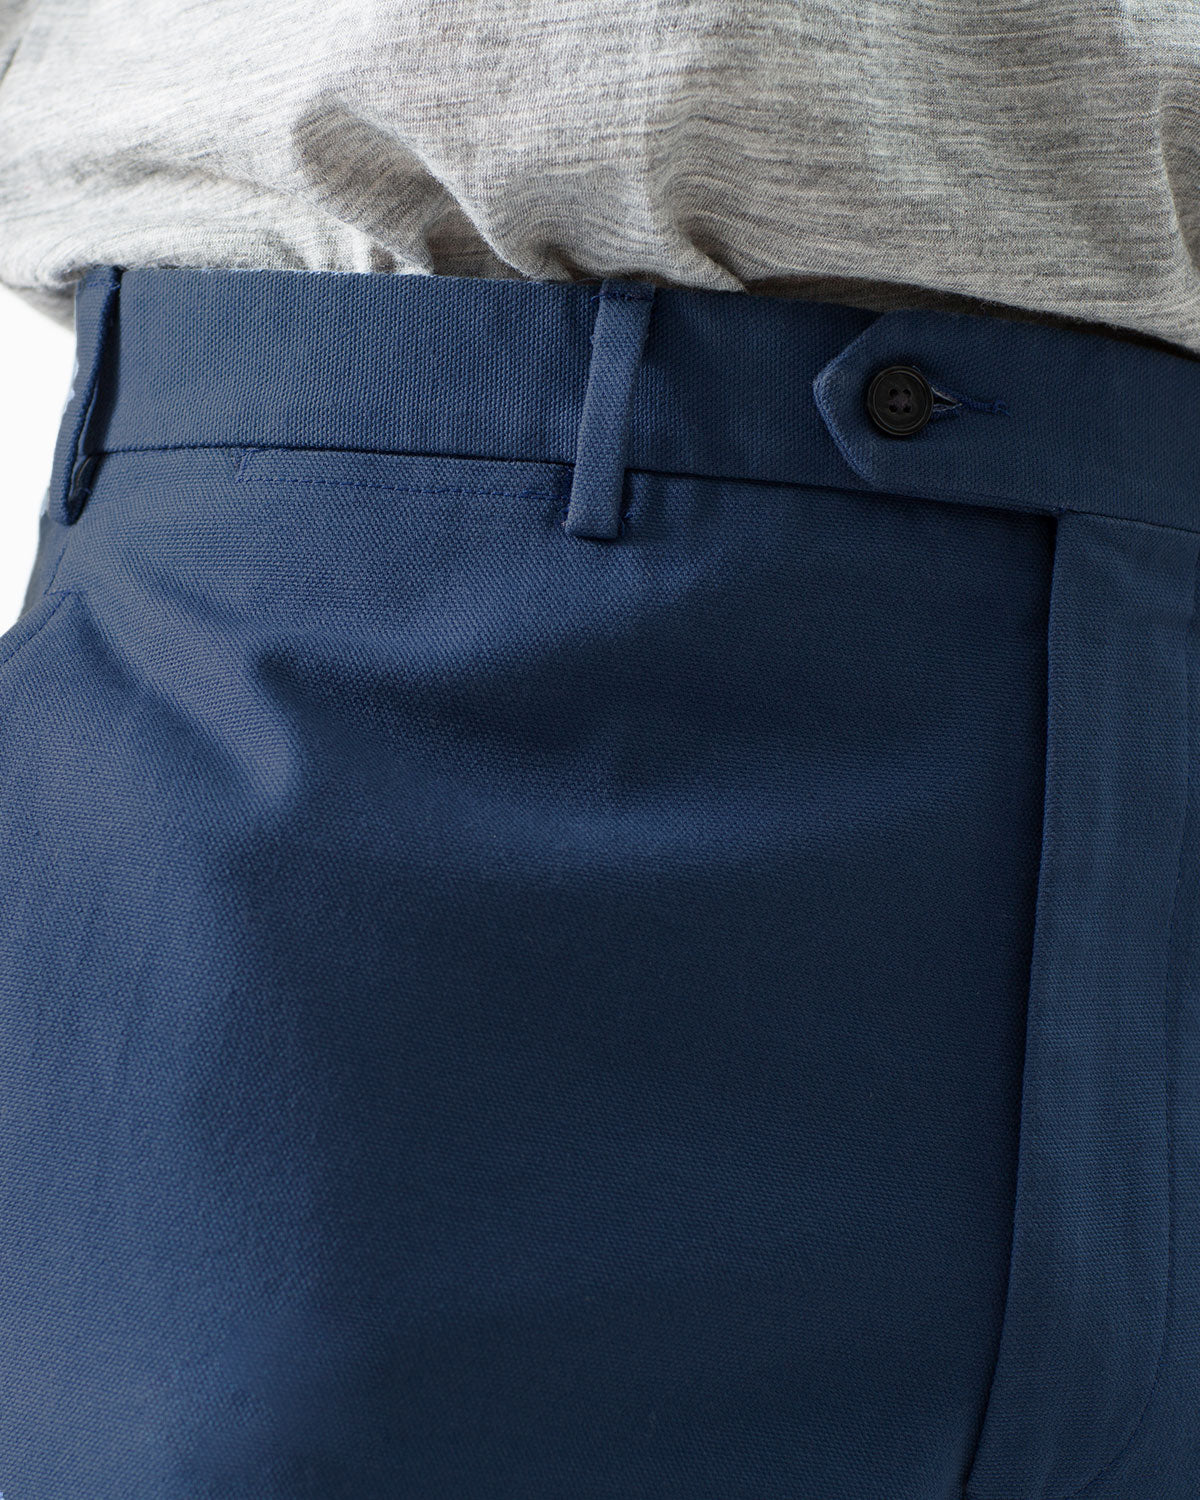 12oz Cotton Canvas Chino, Blue